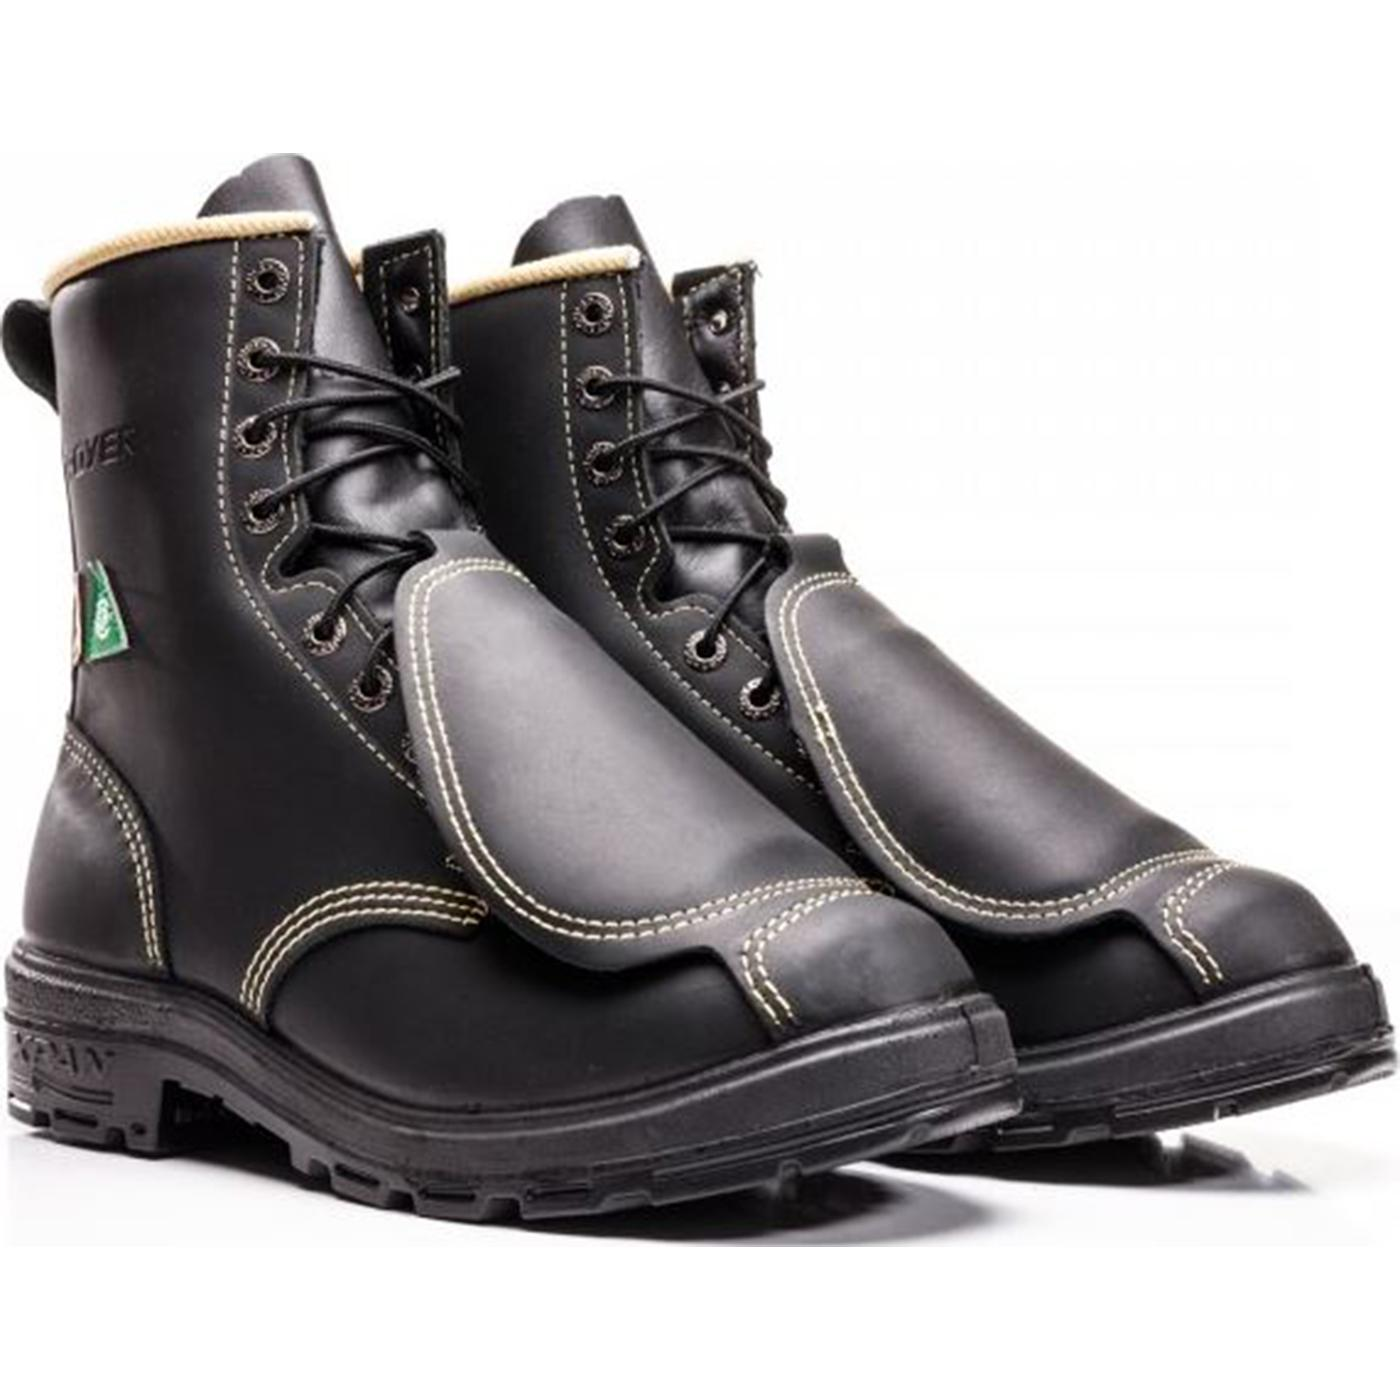 Royer Boots